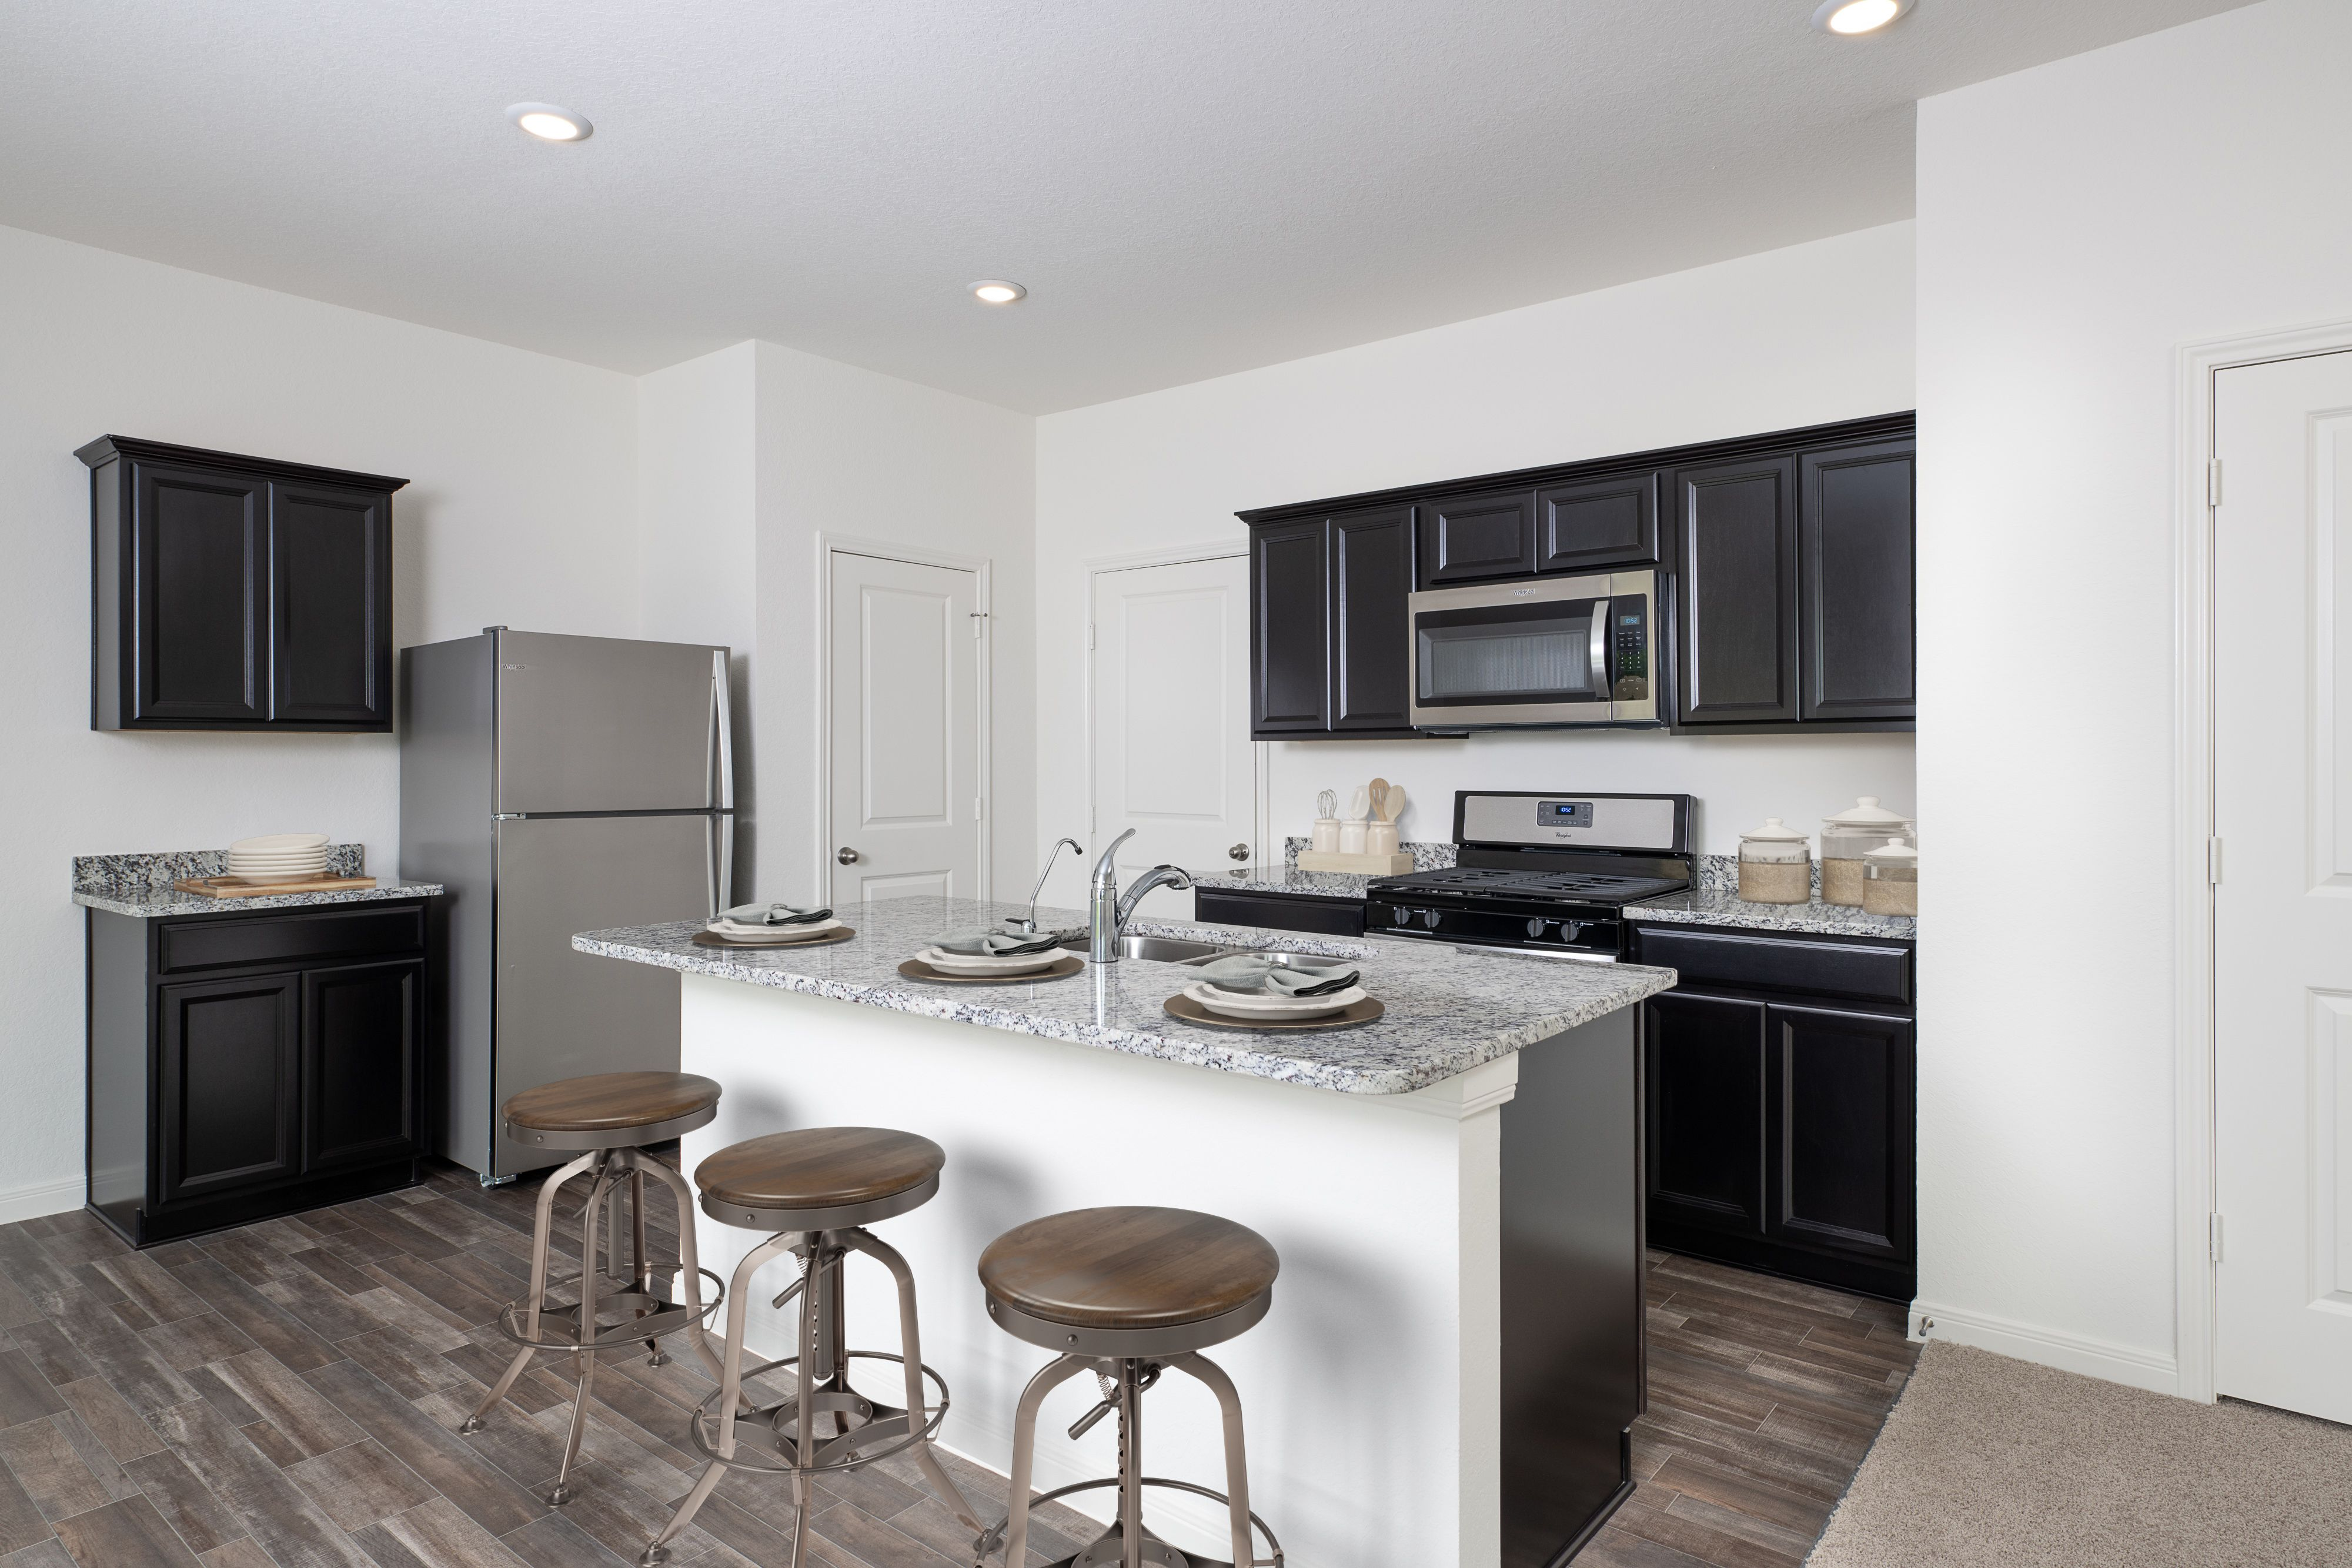 Kitchen featured in the Voyager By Starlight Homes in Austin, TX